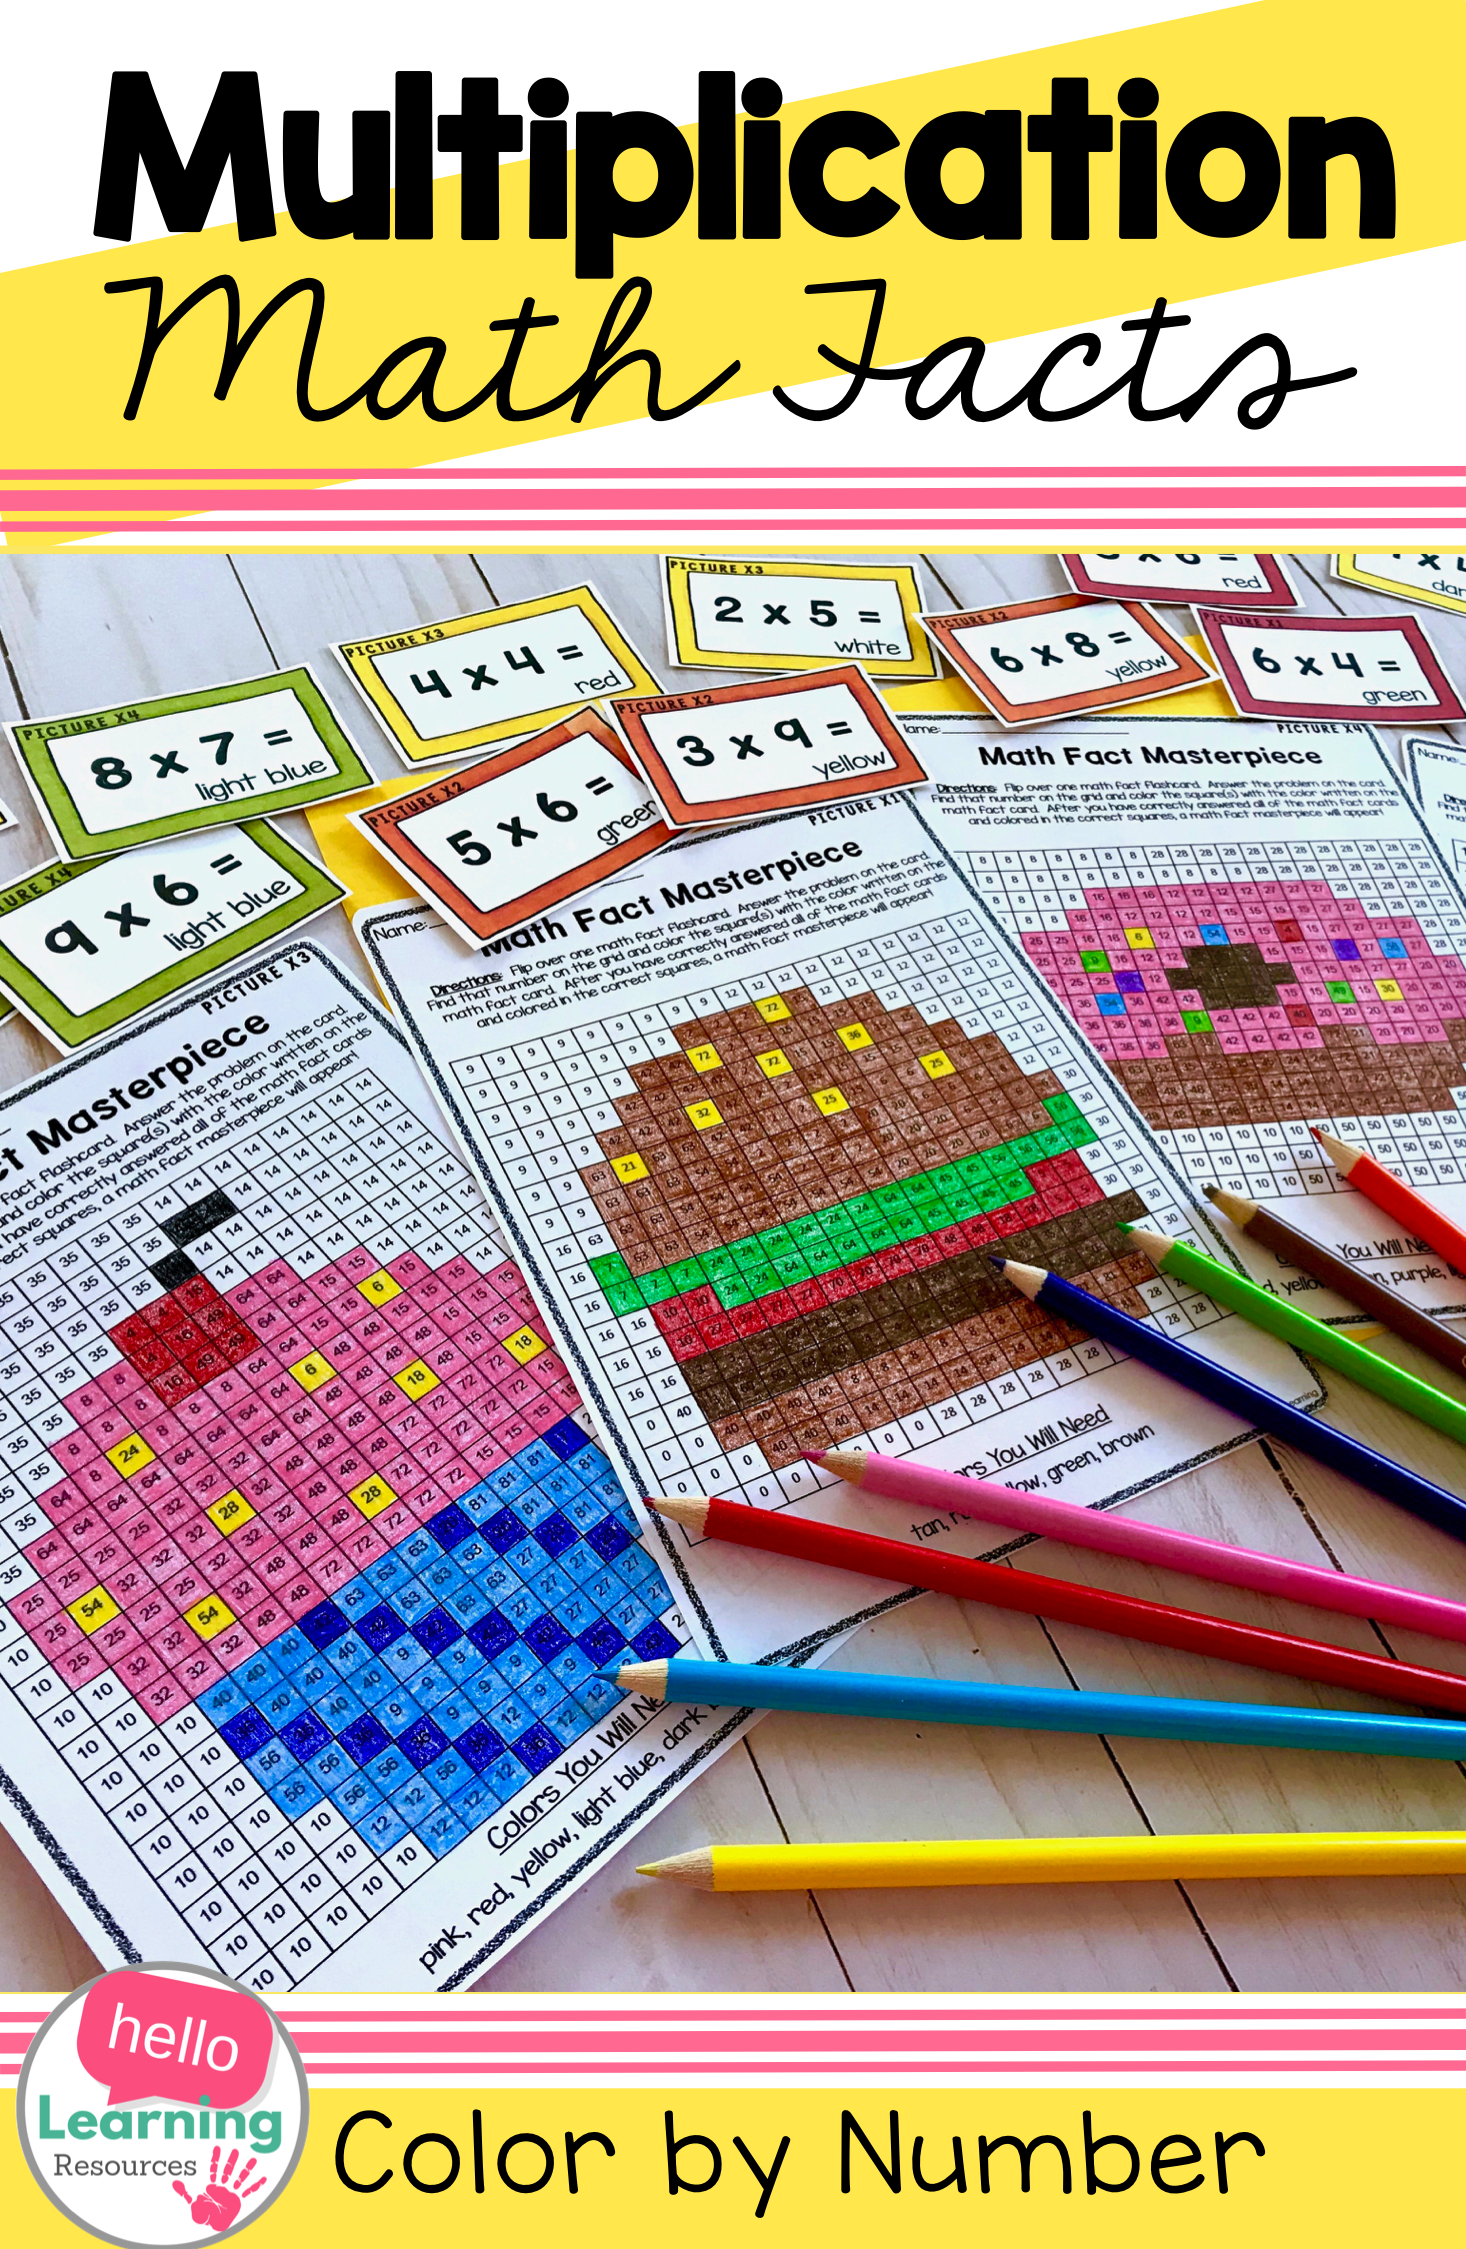 Multiplication Facts Practice Set 1